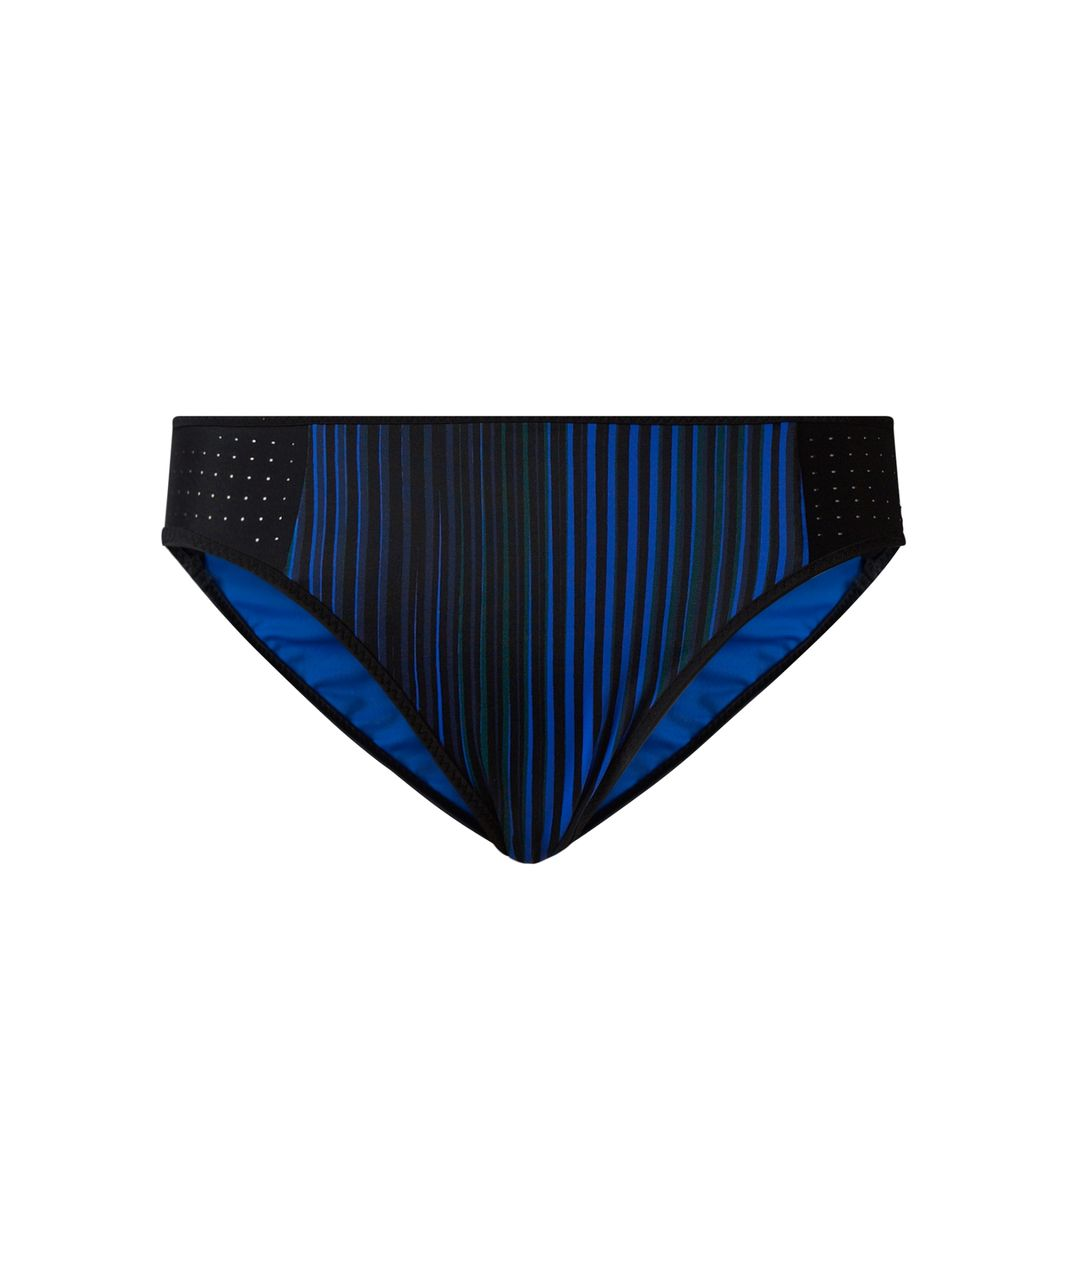 Lululemon Tidal Flow Bikini - Twisted Dune Harbor Blue Black / Black / Harbor Blue